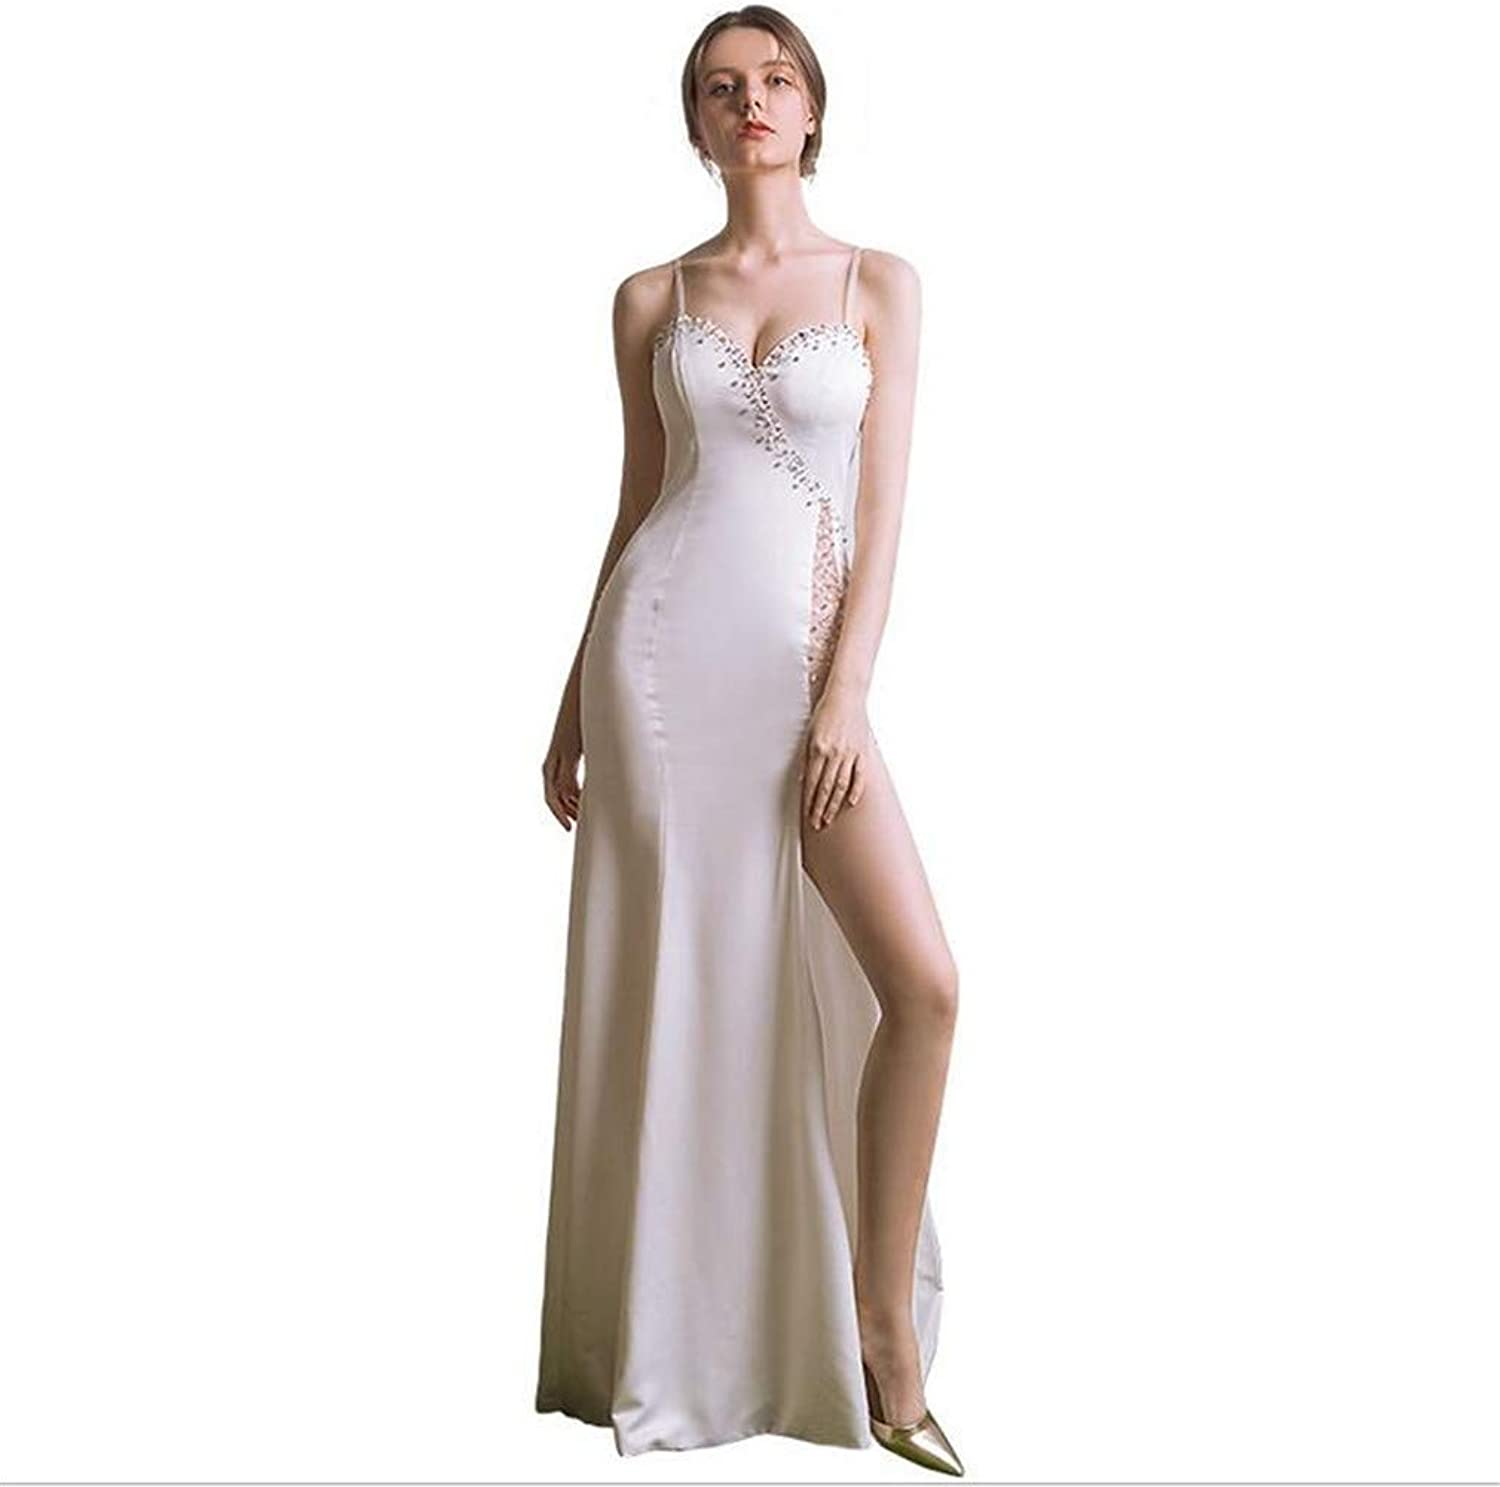 Ladies Sexy Evening Dress, White Skirt Formal Long Gown High Side Slit VNeck Backless Cocktail Party